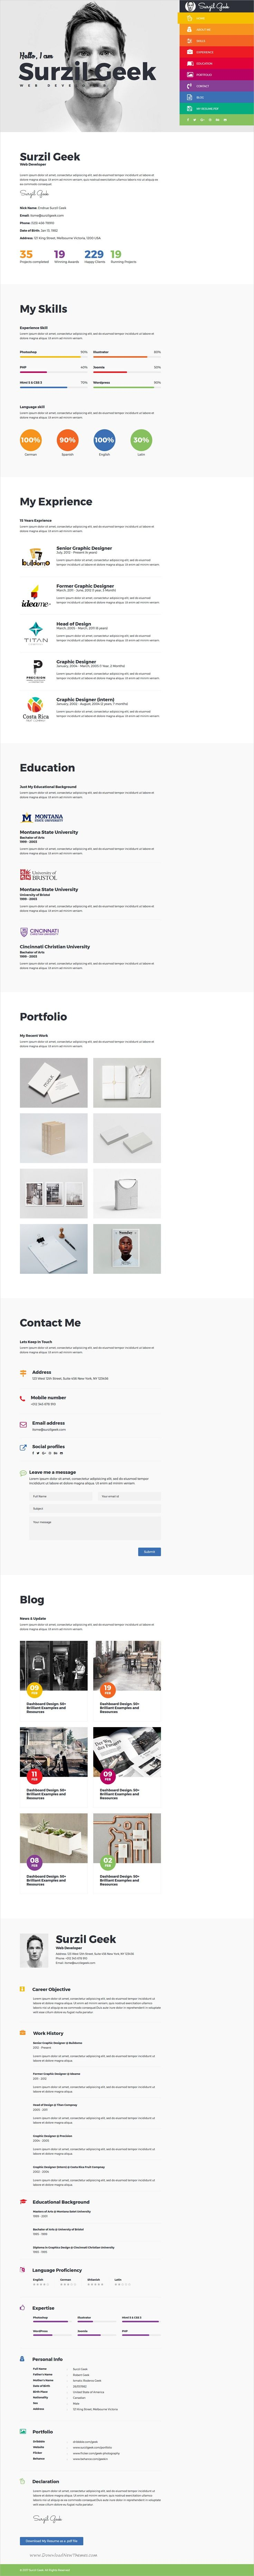 Geek Resume u0026 Portfolio Template 10